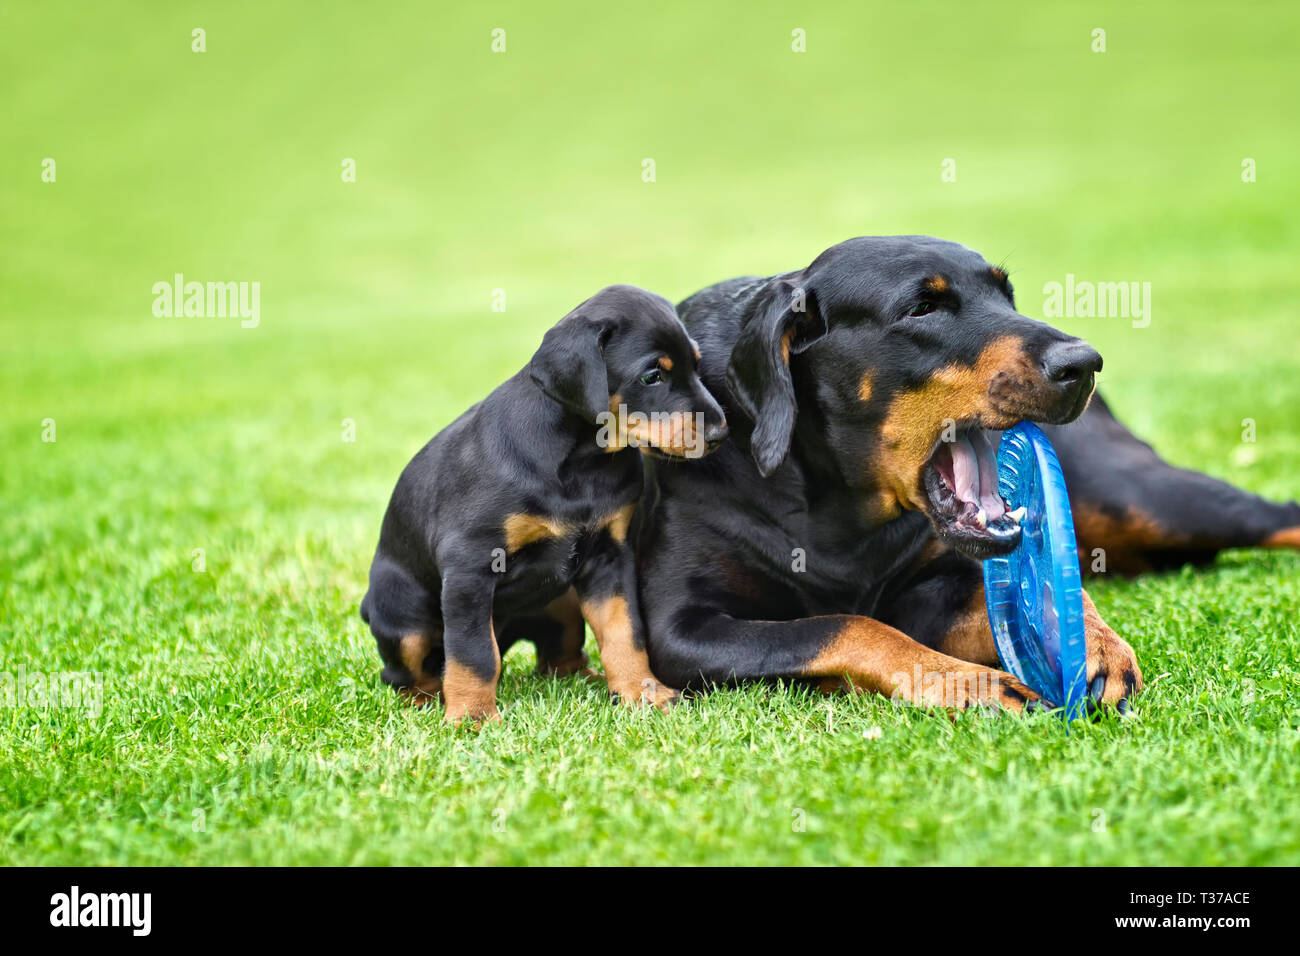 Puppy is playing with his mother. He is a black and brown doberman and he is on the garden or park. Background is green grass. - Stock Image